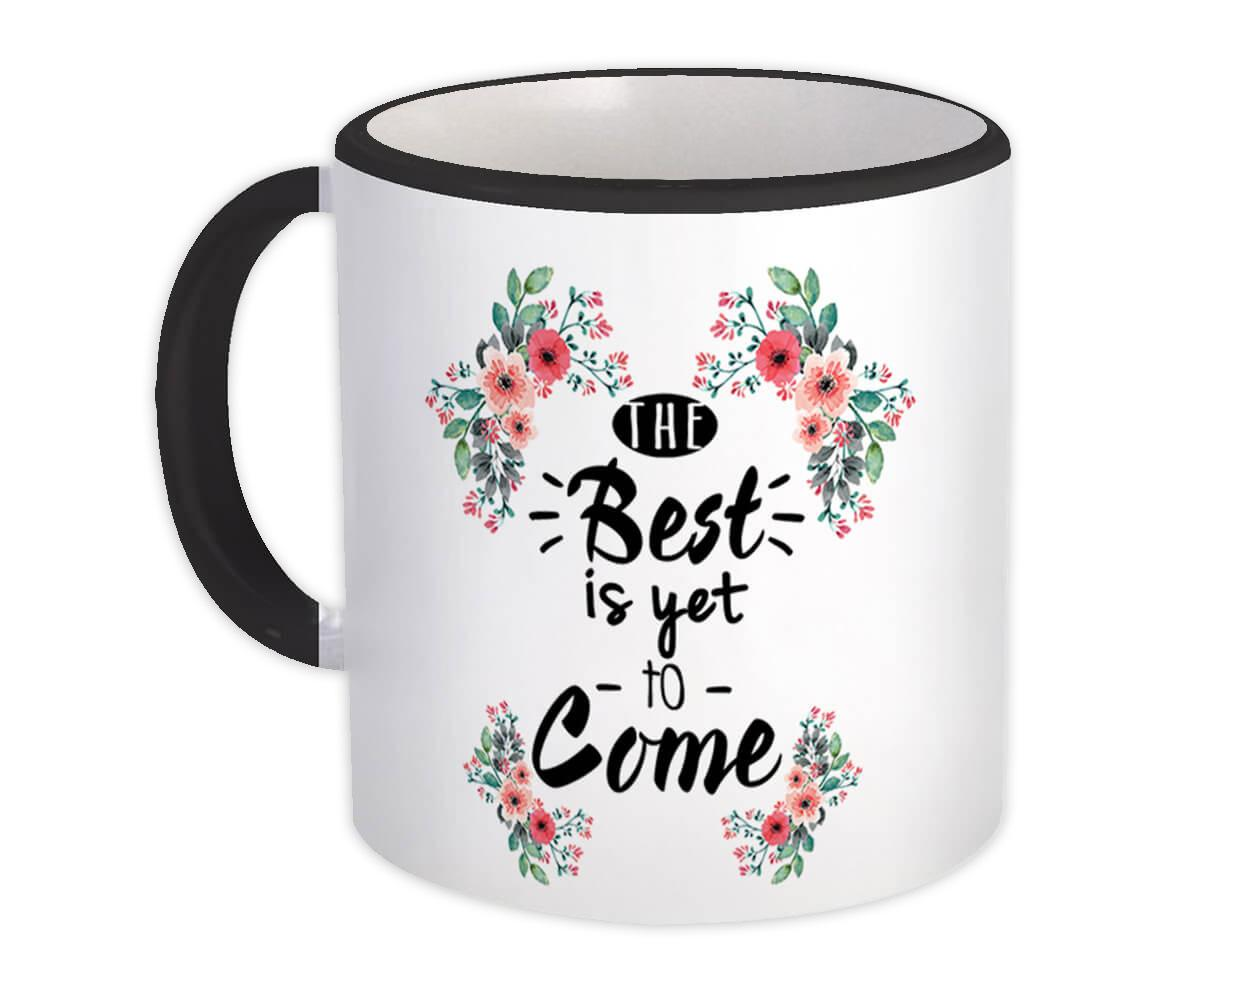 The Best is Yet to Come : Gift Mug Inspirational Quotes Flower Office Pastel